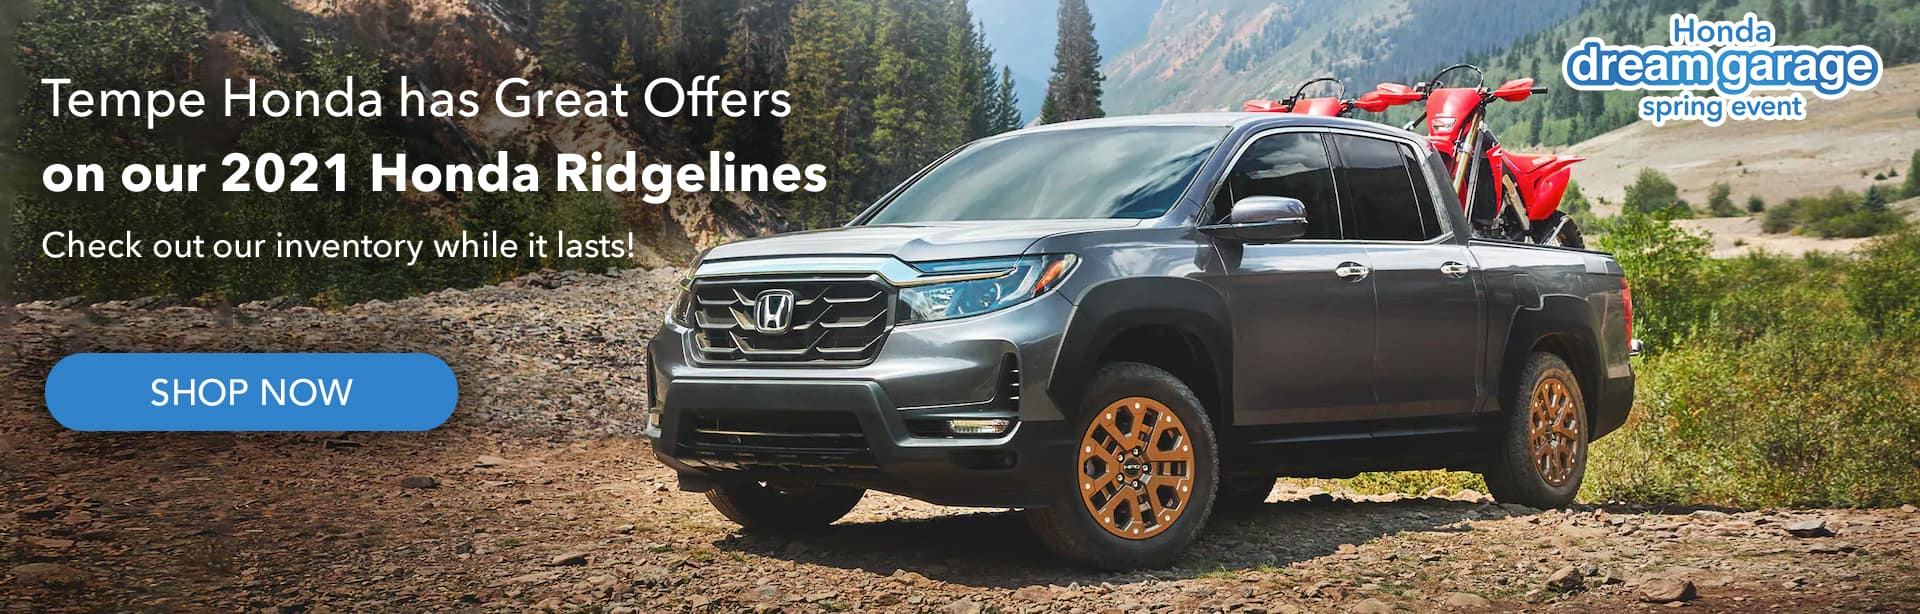 Tempe Honda has Great Offers on our 2021 Honda Ridgelines Check out our inventory while it lasts!